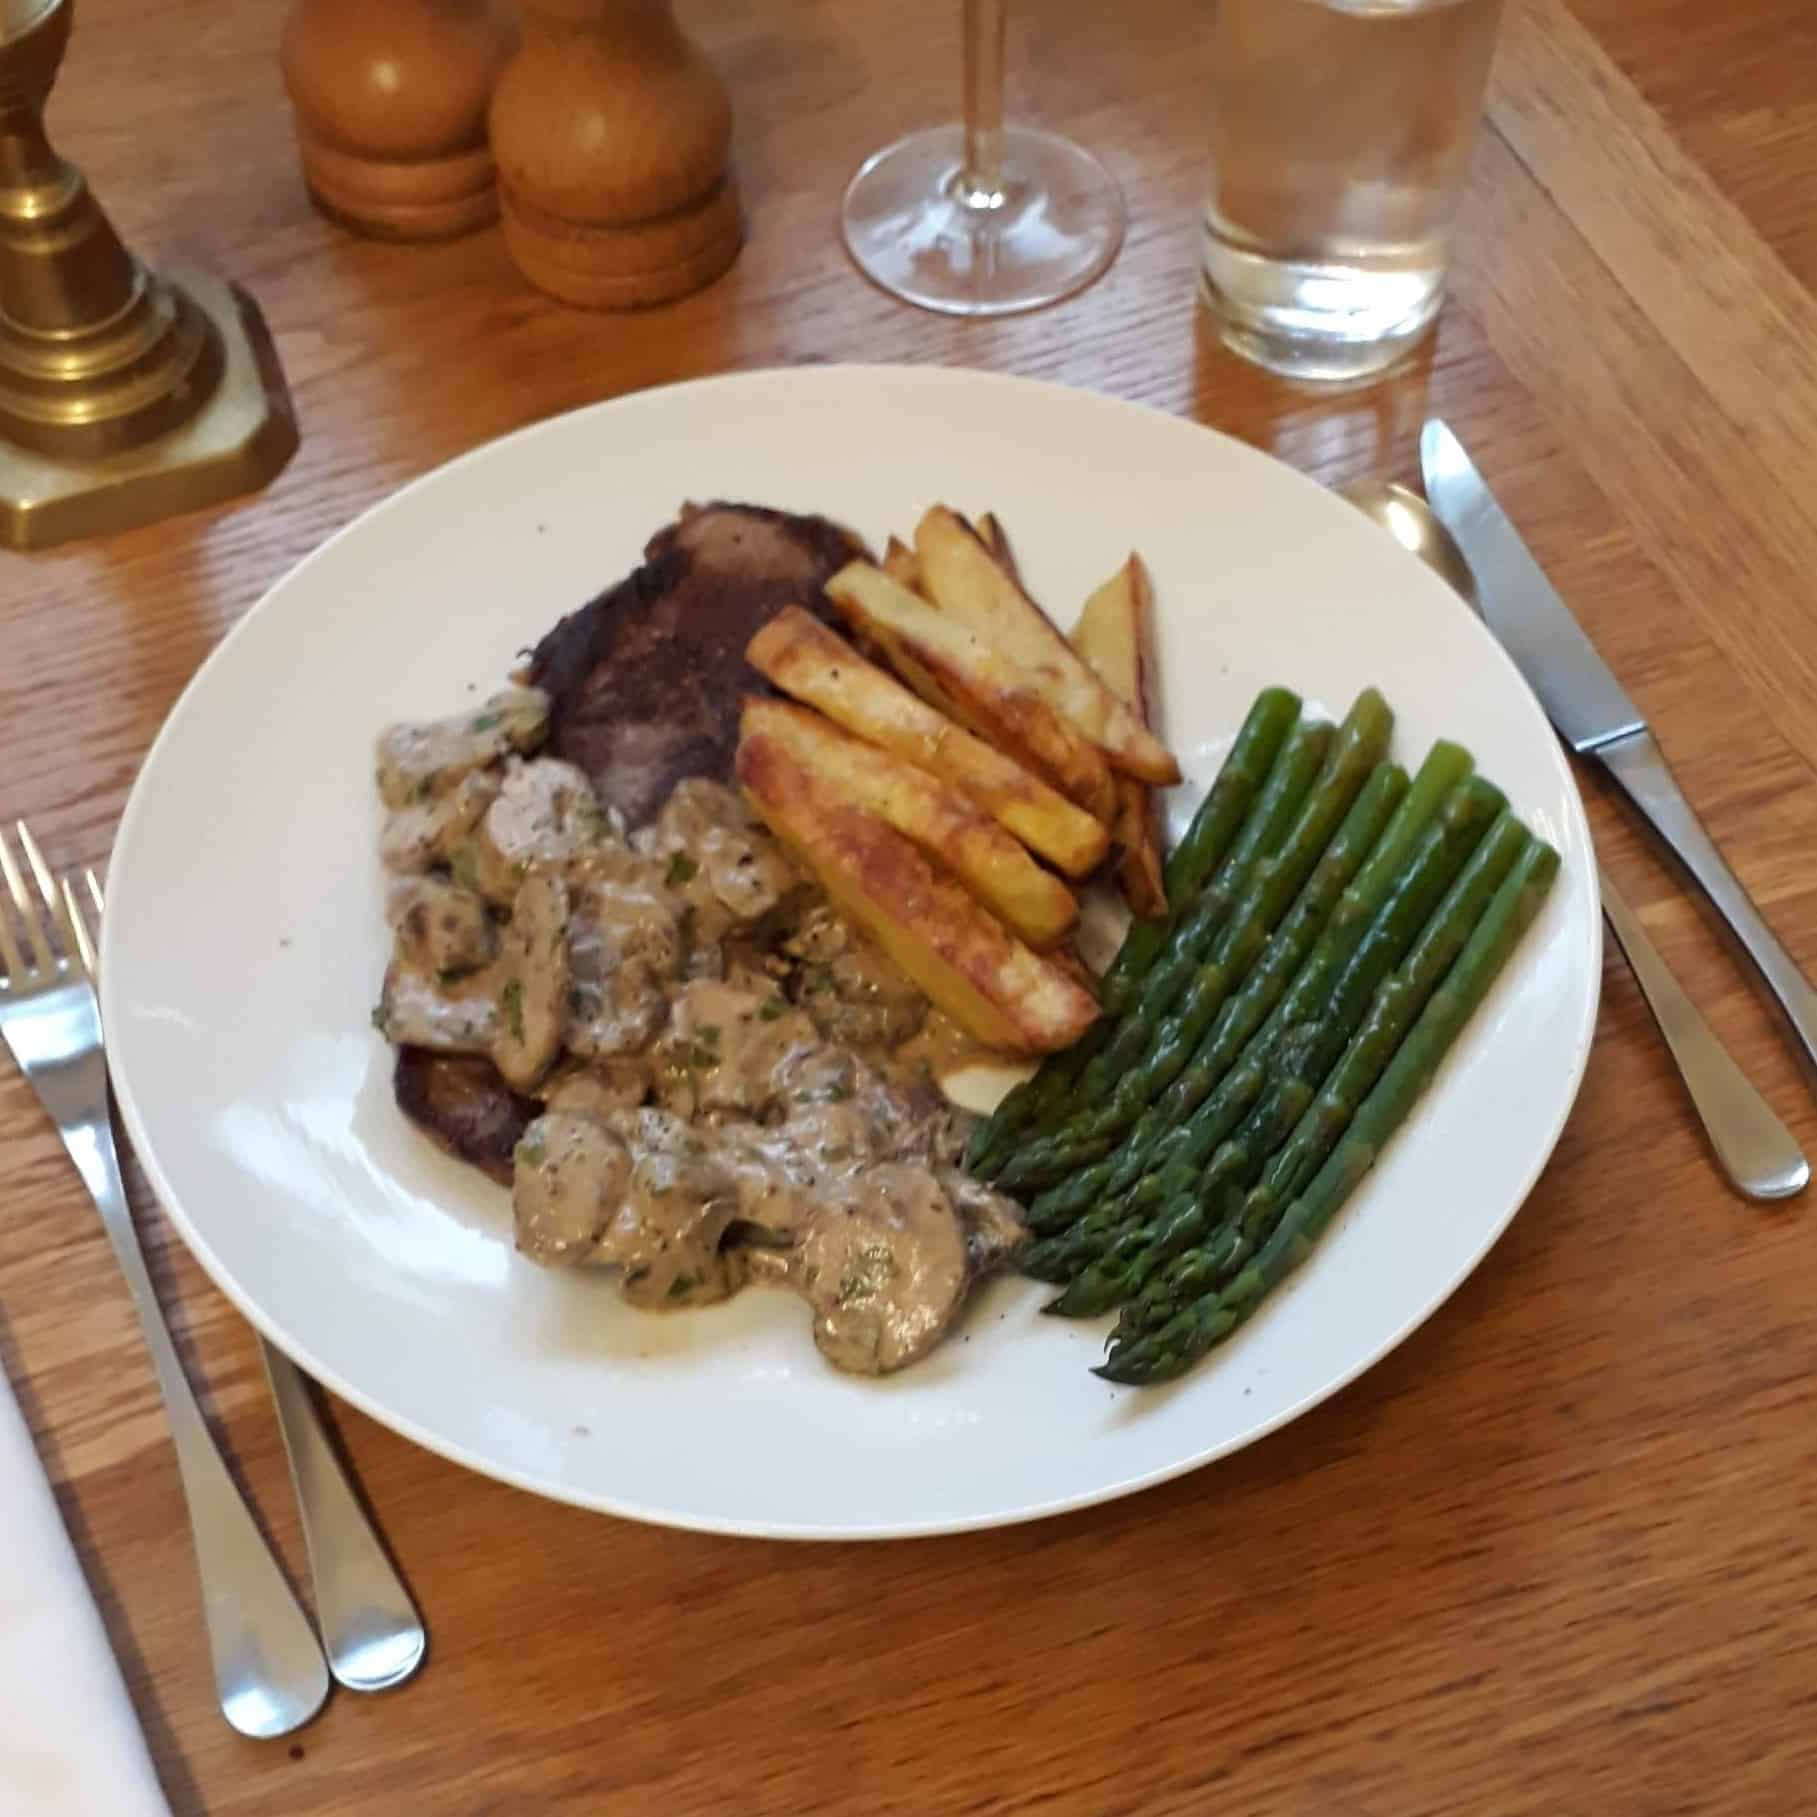 Picture of the meal I made for Fathers' Day from Sourced Locally food